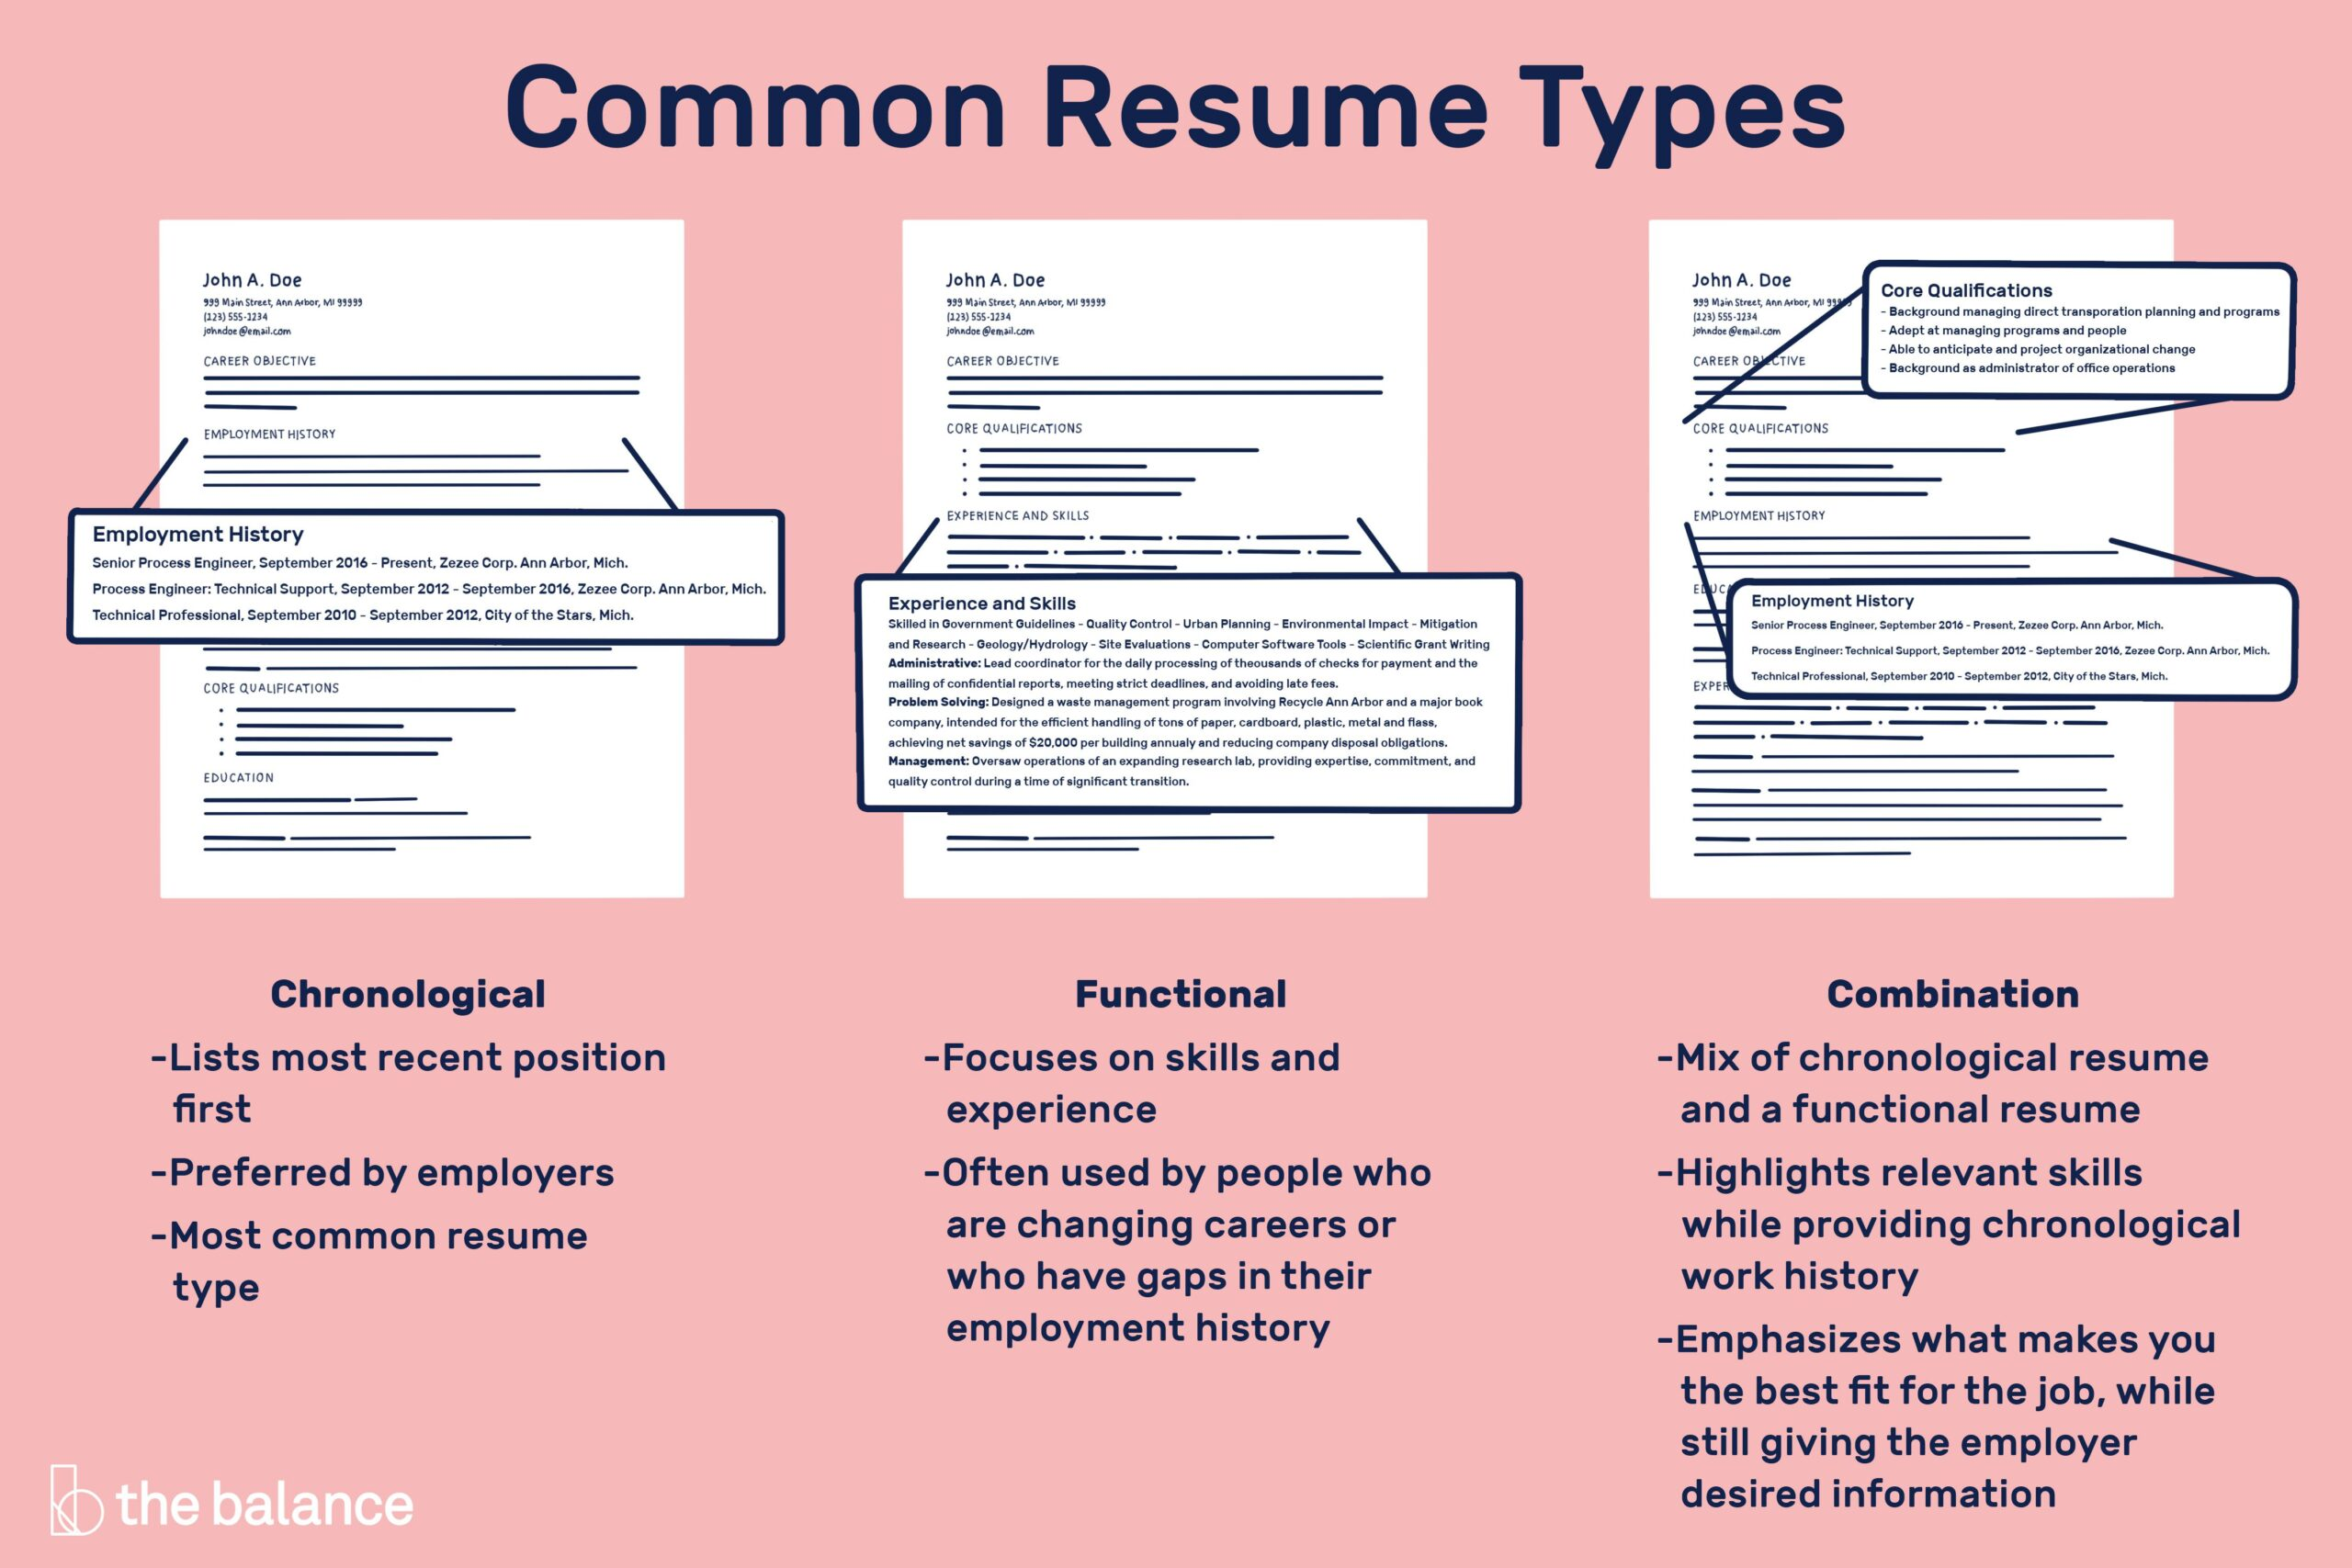 different resume types styles of writing chronological functional combination 2063235v4 Resume Different Styles Of Resume Writing